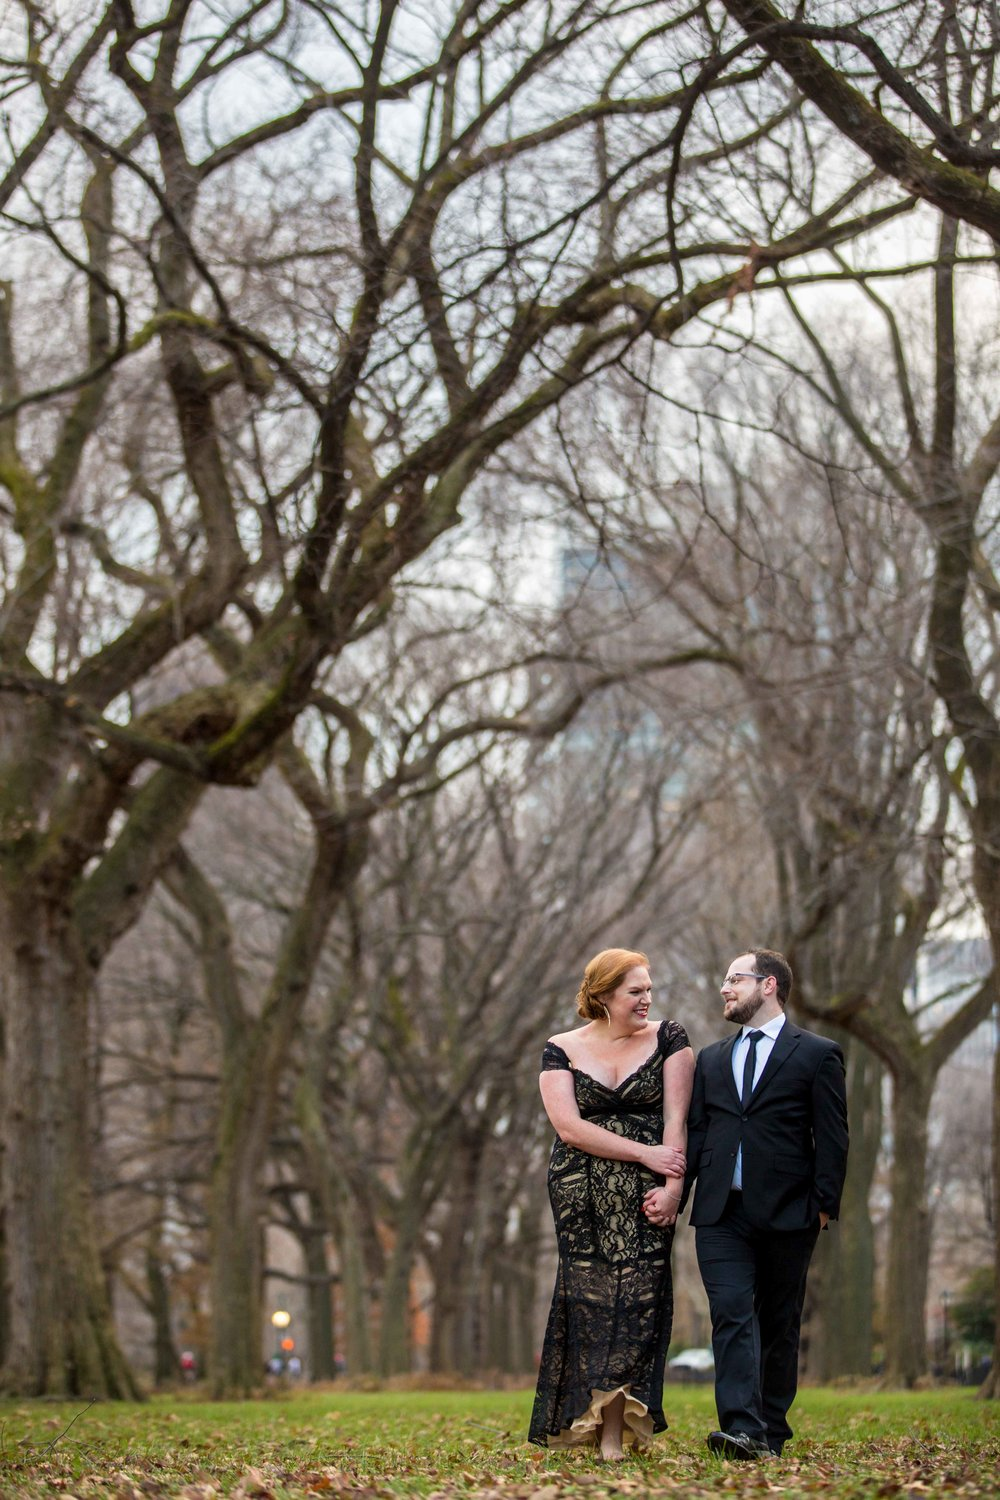 Central Park Engagement Session Photography Shoot NYC Wedding Photographer Photos